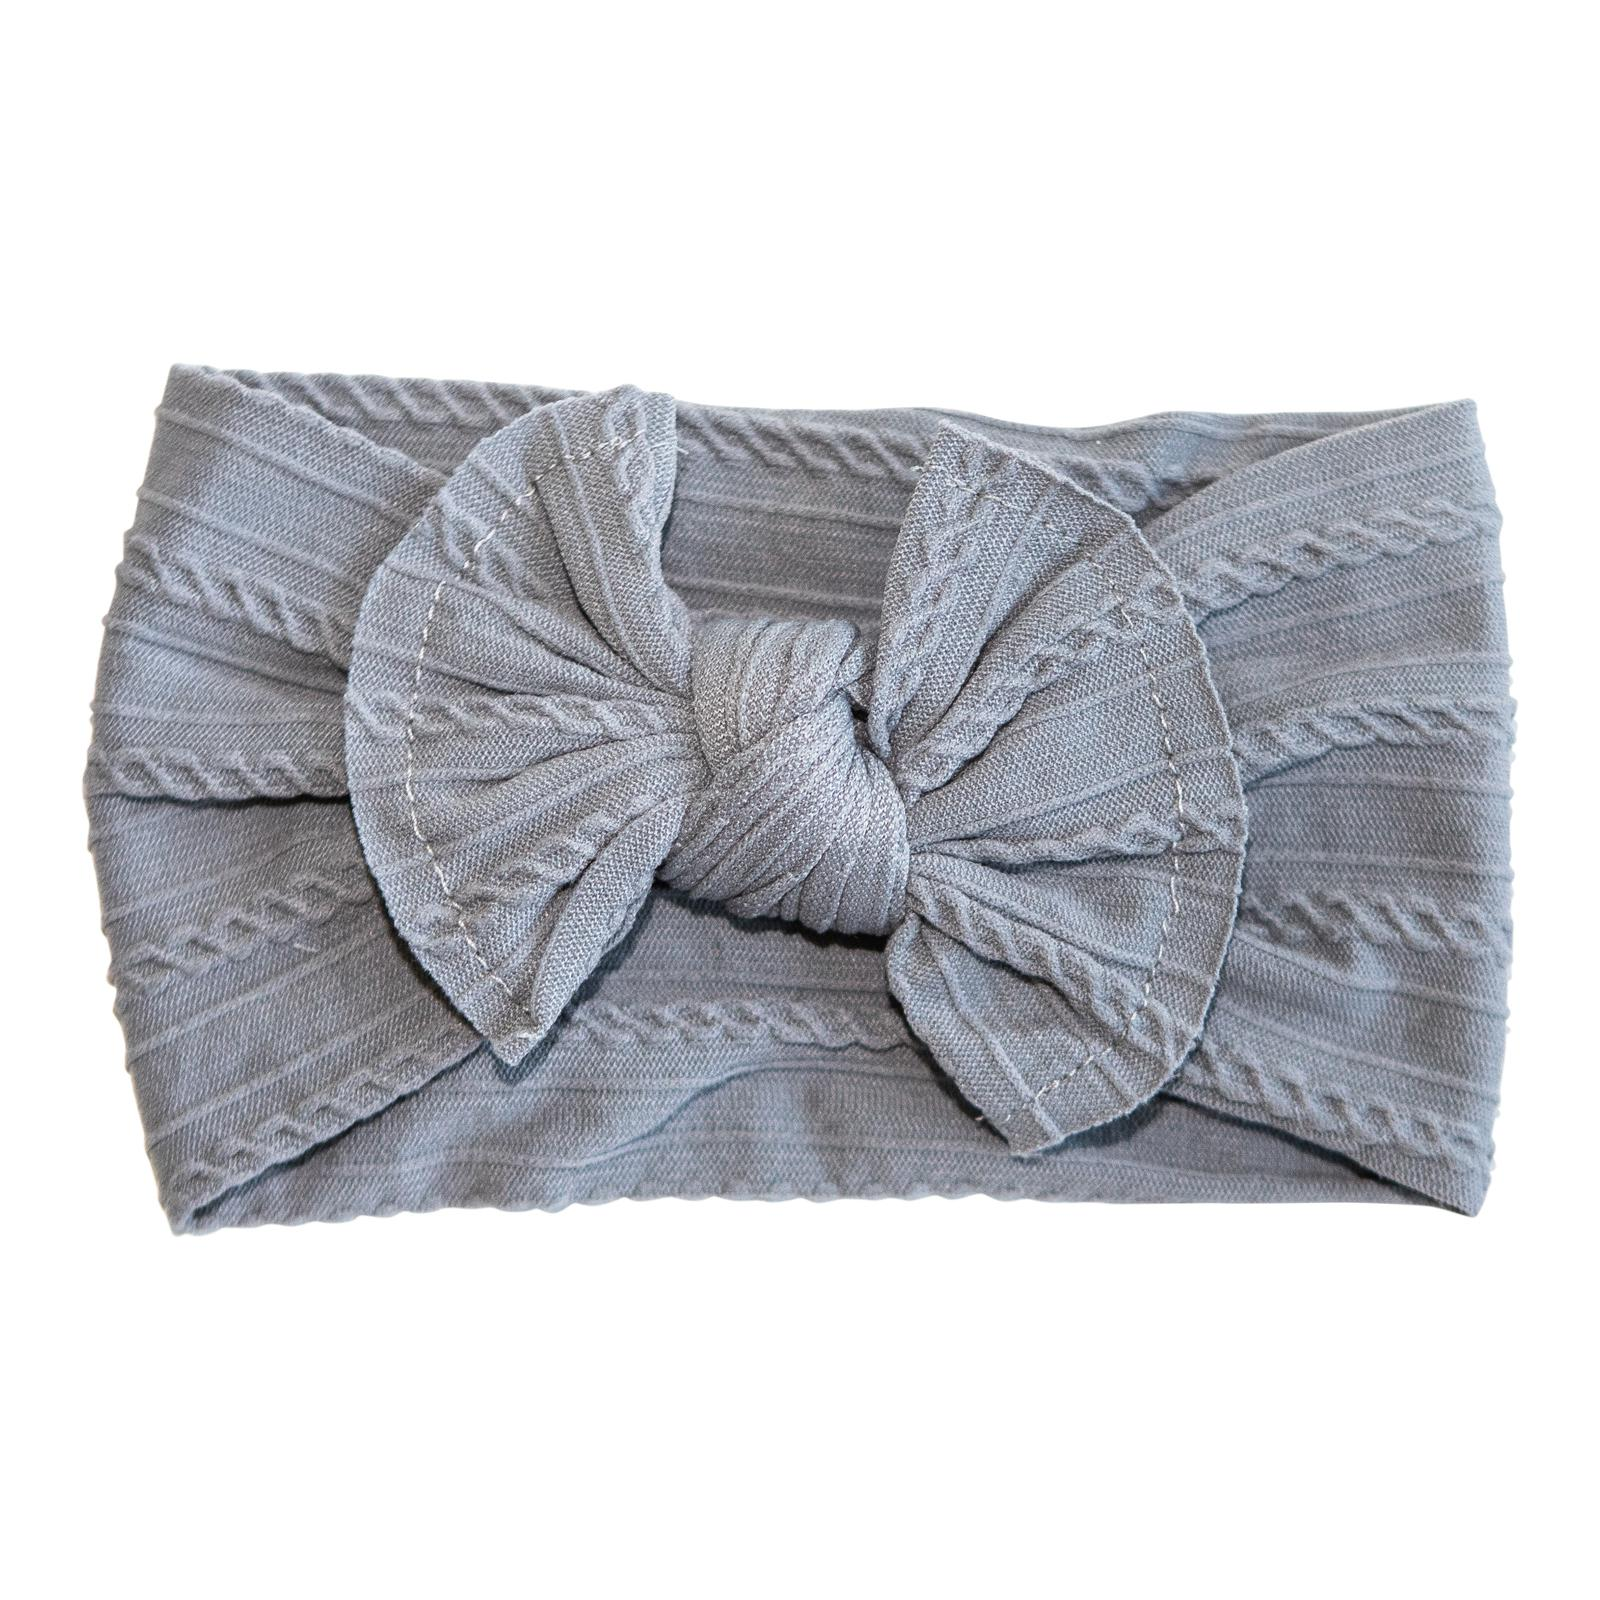 Koala Gray Cable Knit Nylon Headwrap-Mila & Rose ®